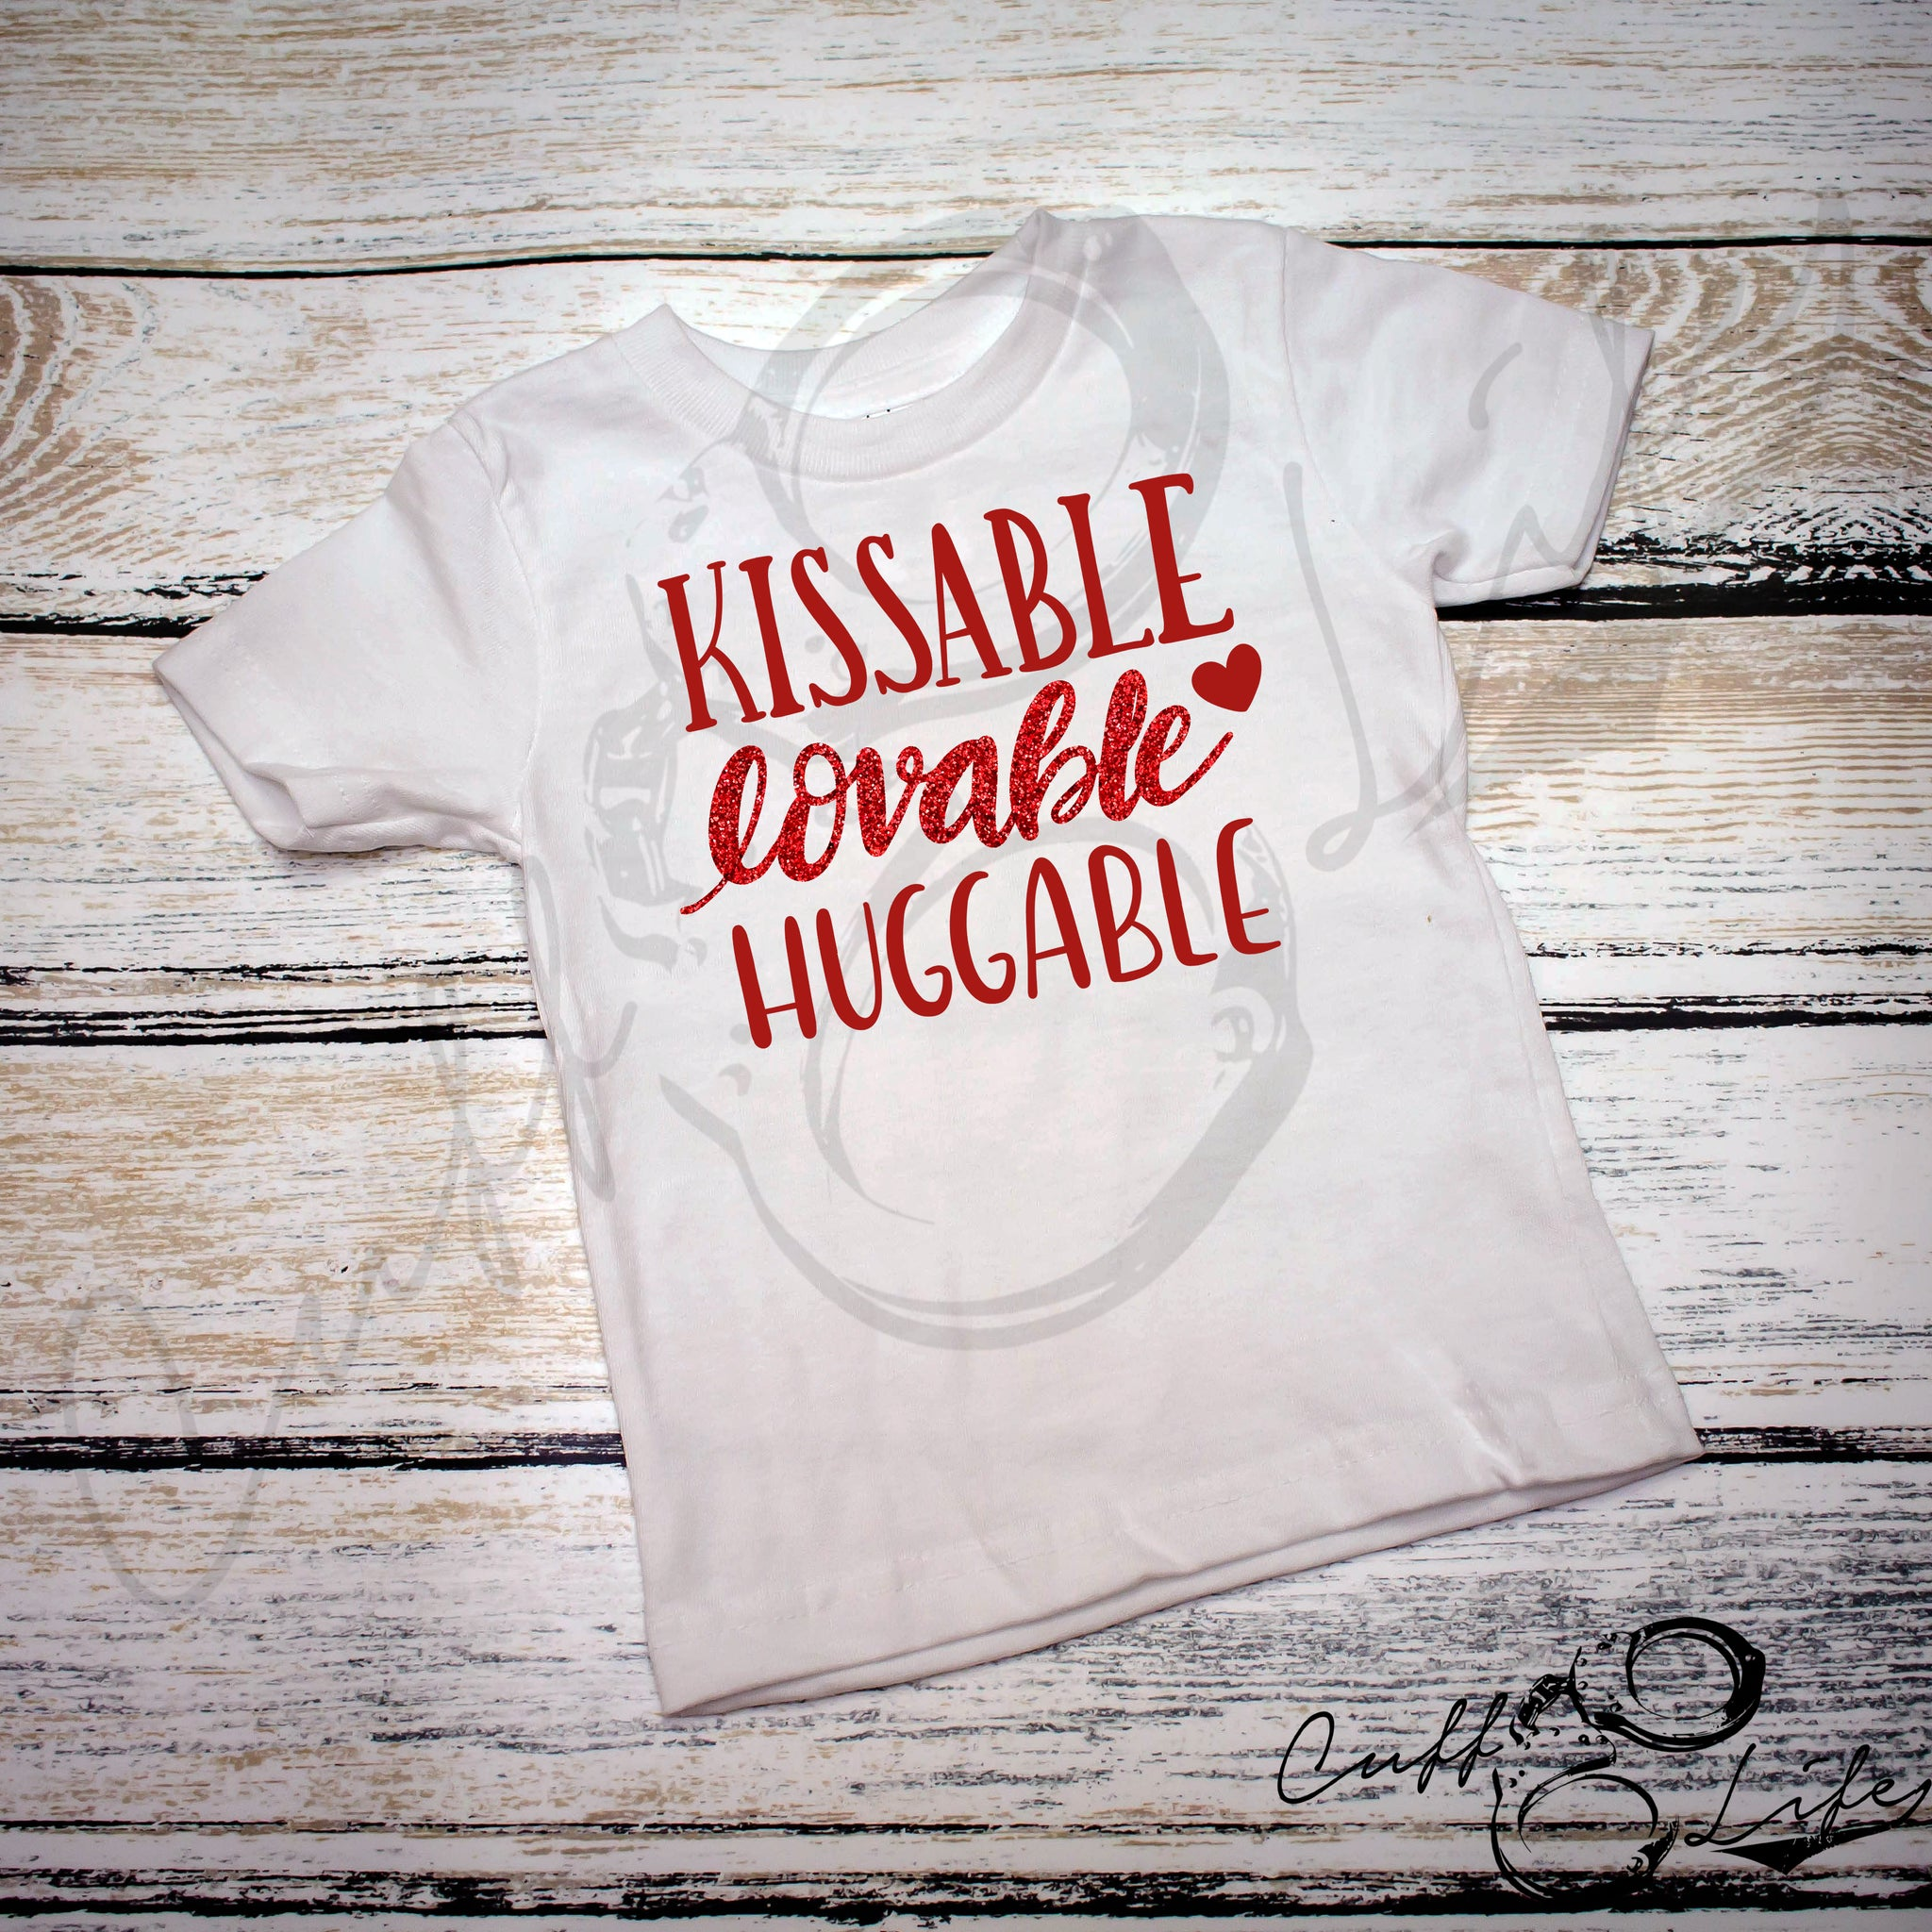 Kissable Lovable Huggable - Toddler/Youth T-Shirt